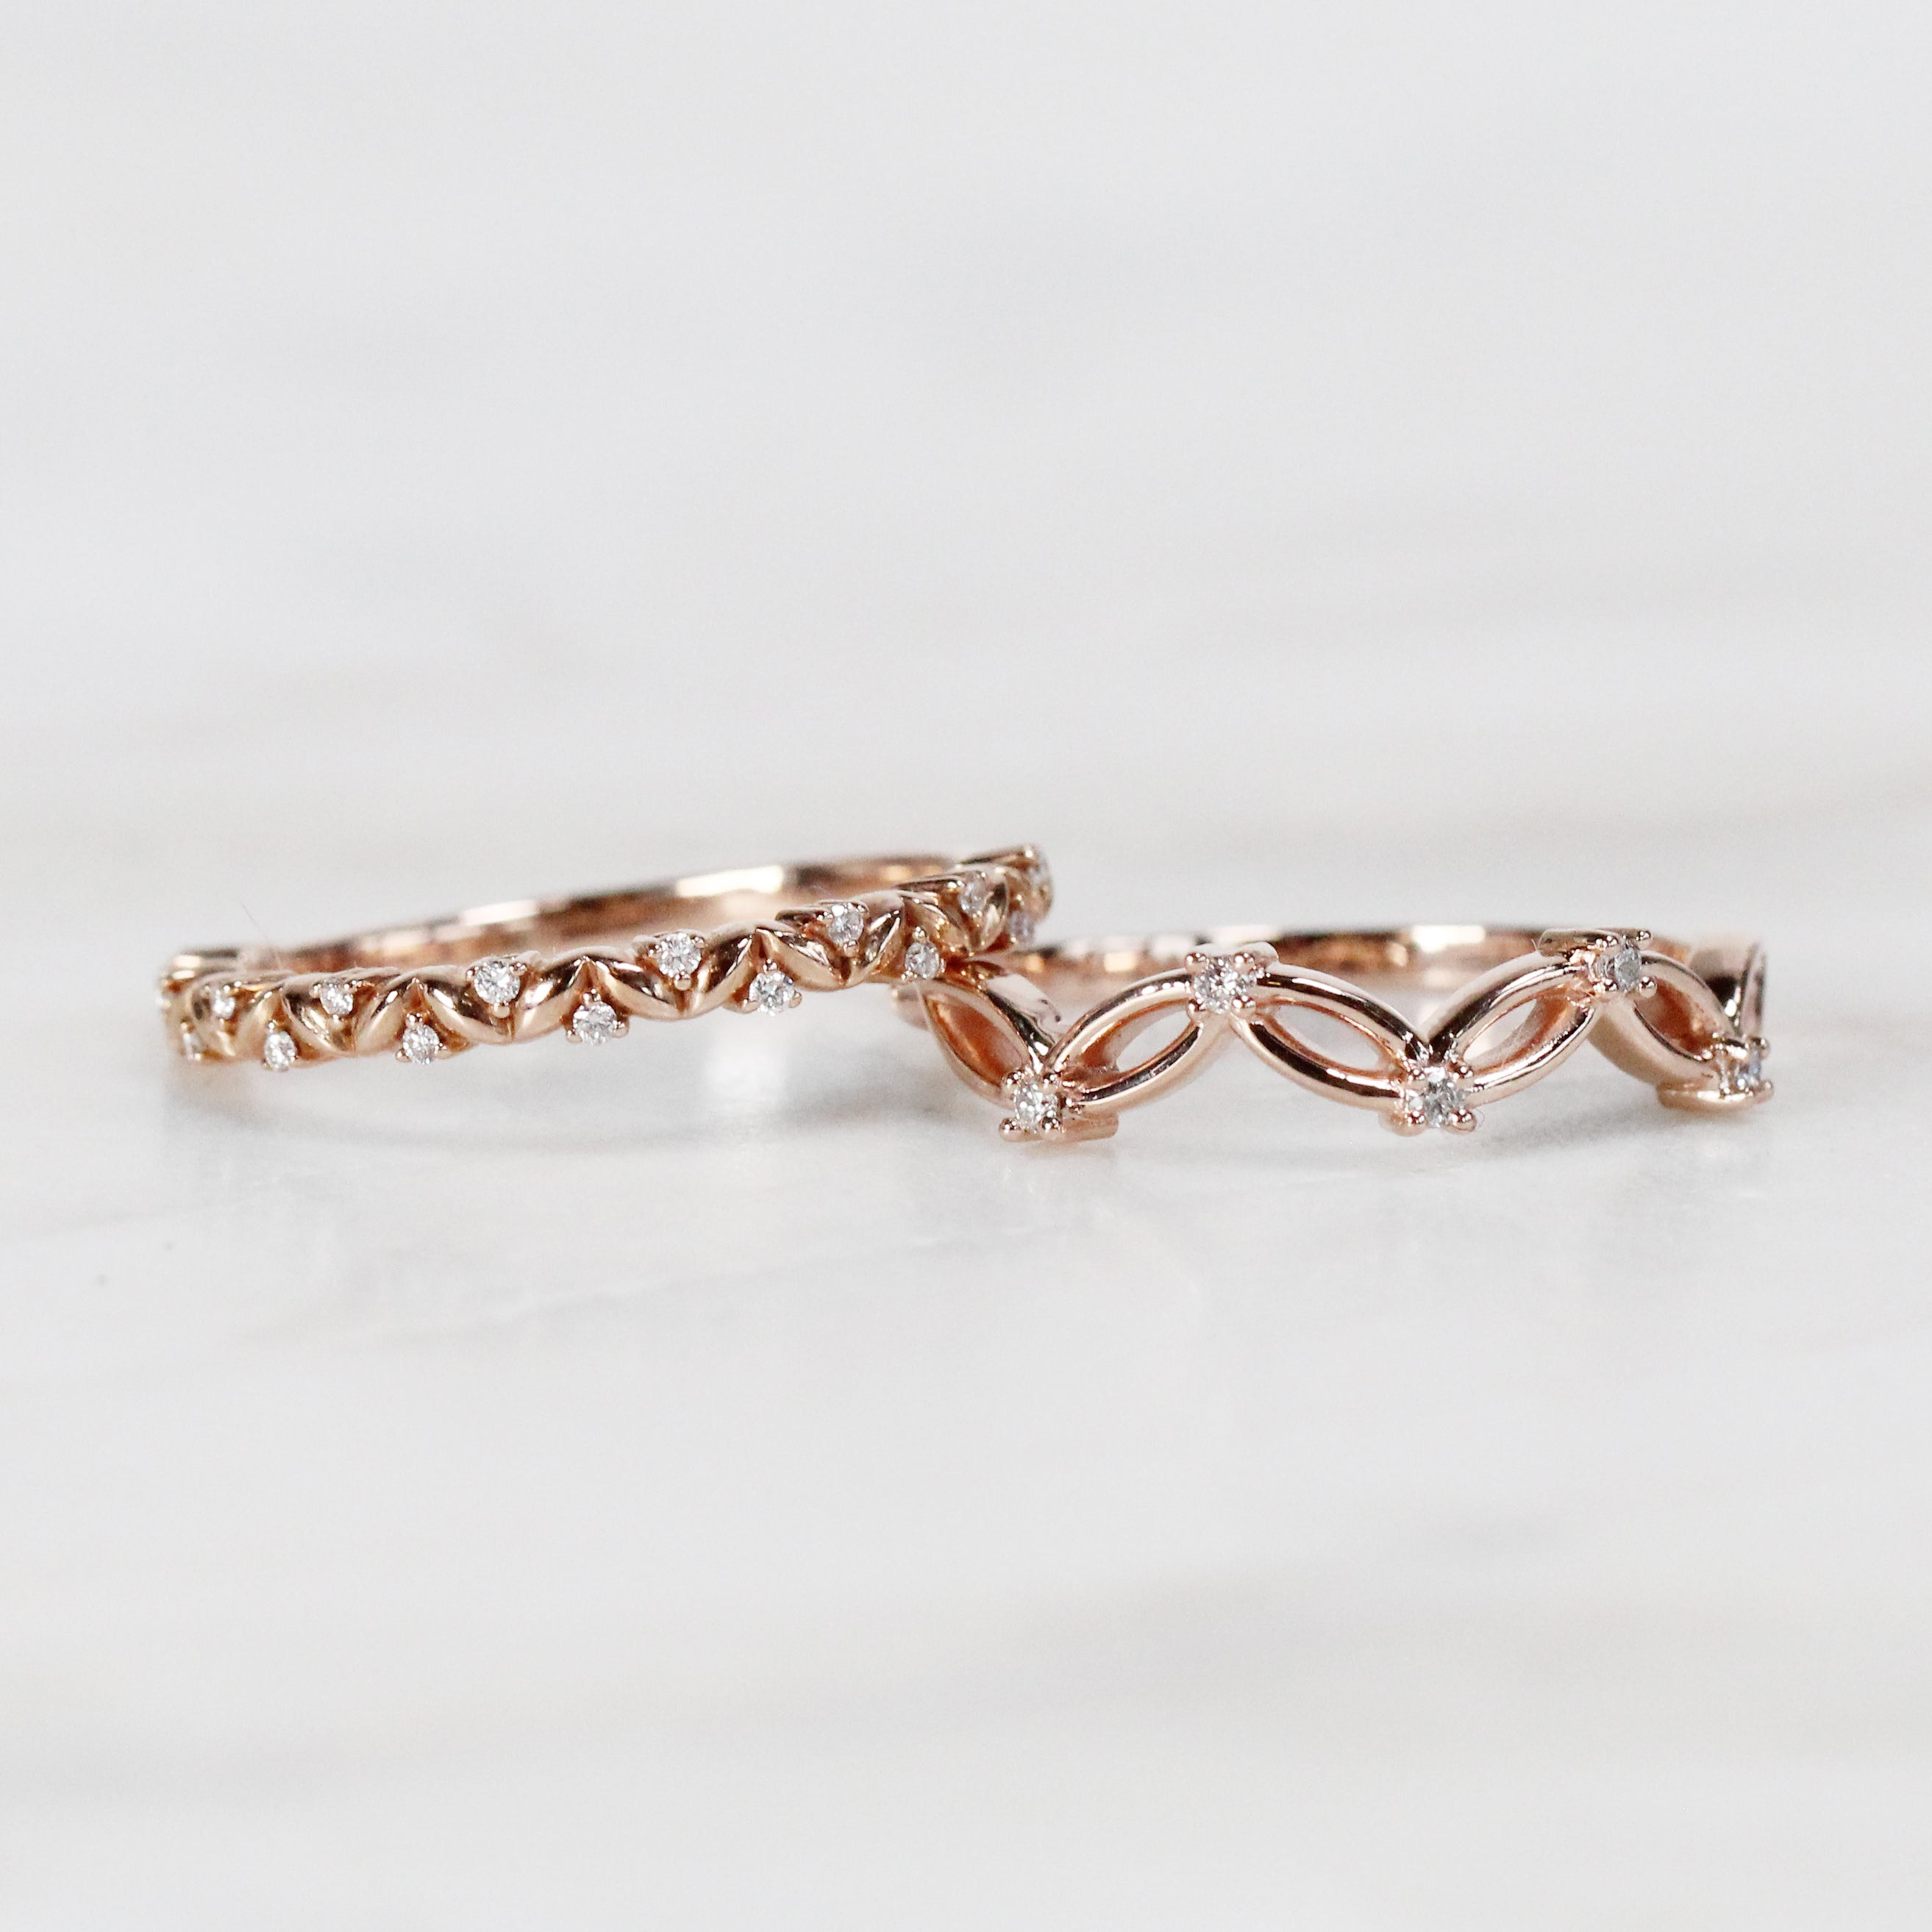 Josie Floral Leaf Diamond Wedding Stacking Band - Midwinter Co. Alternative Bridal Rings and Modern Fine Jewelry